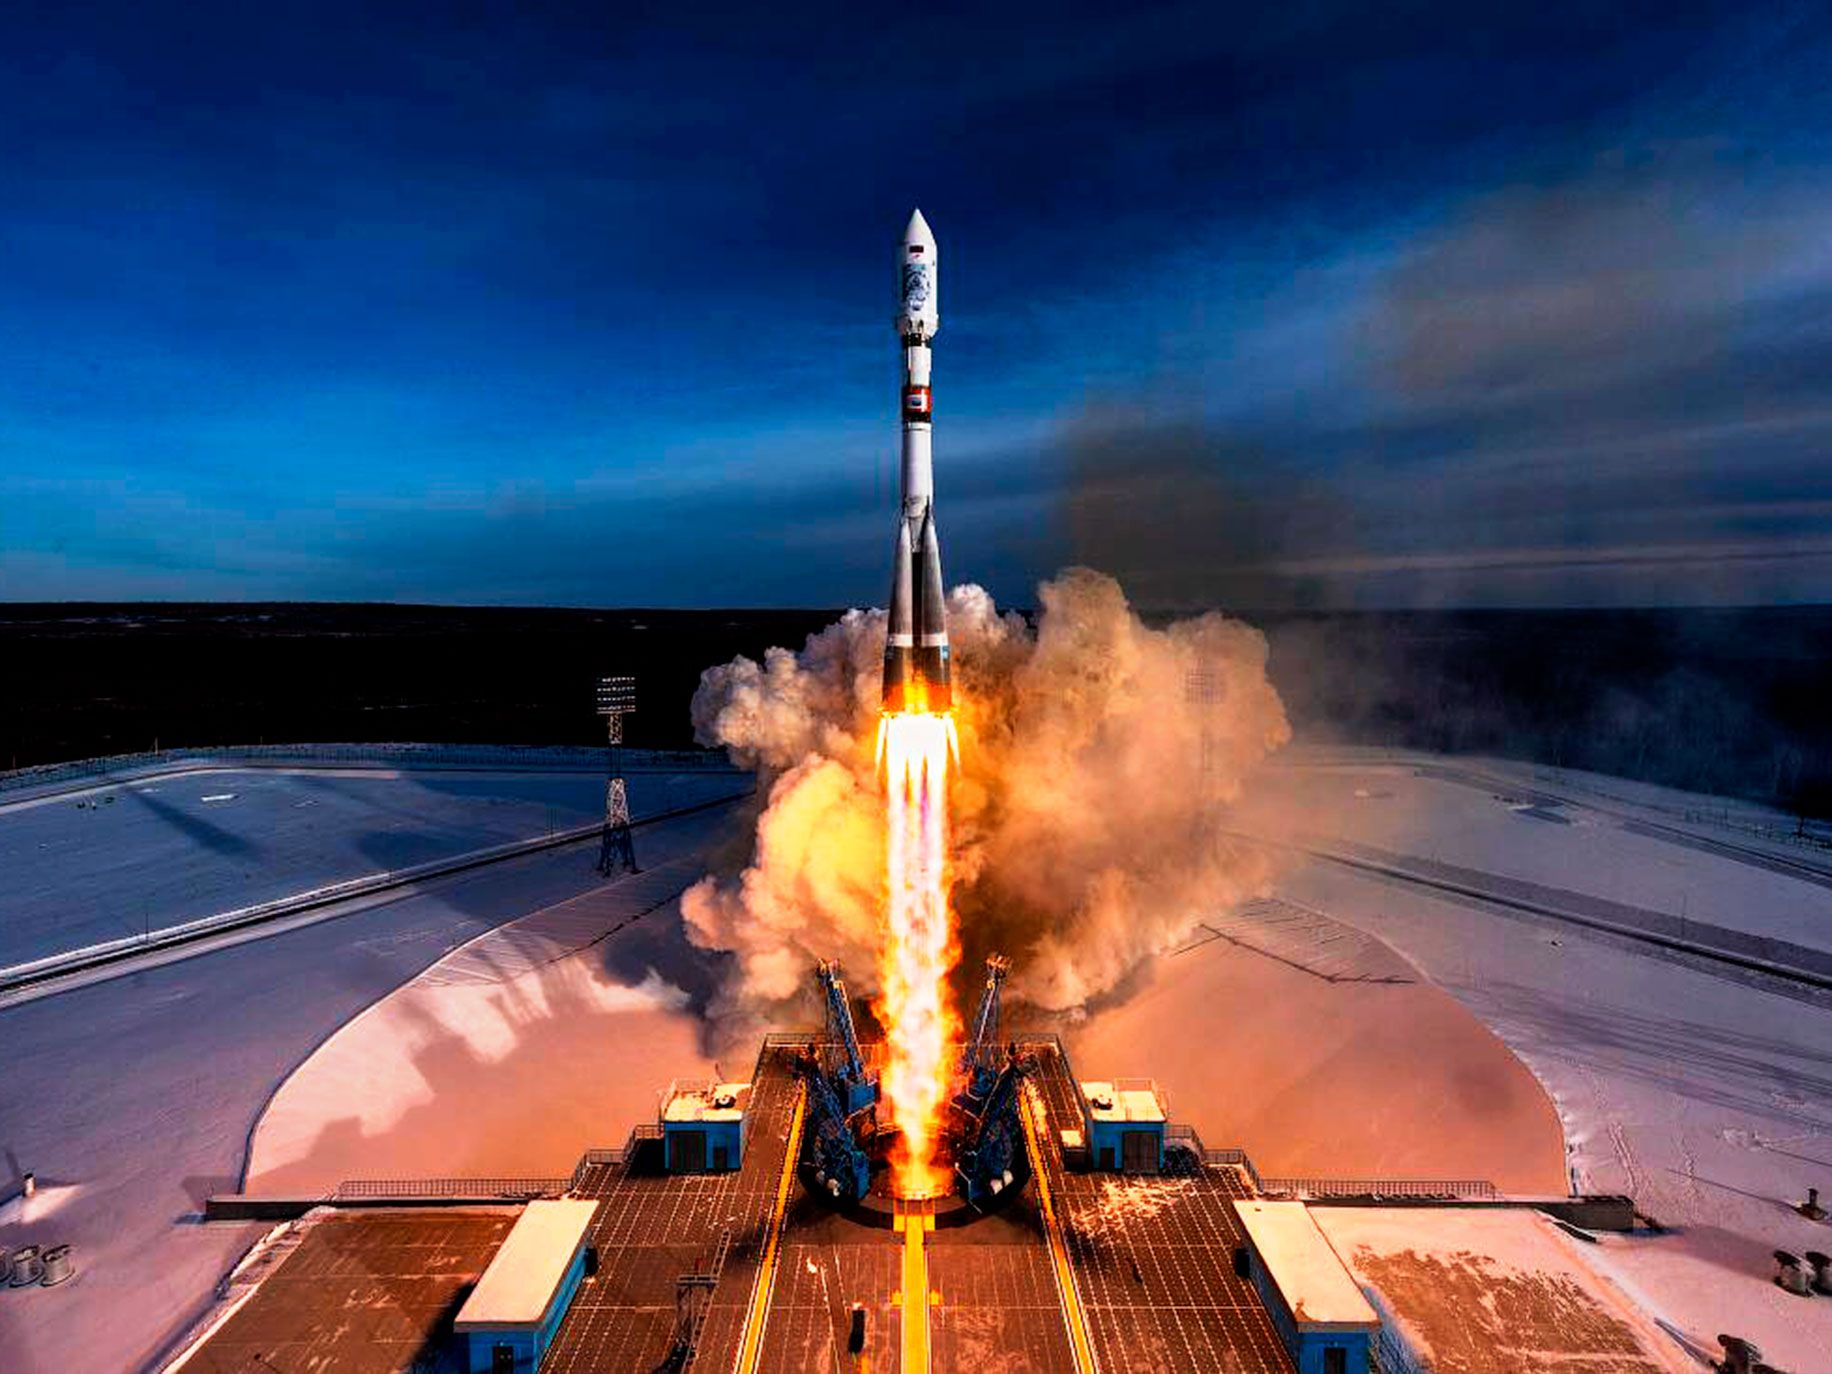 Planet sends its satellites into orbit as low-cost, secondary payload on rockets. In July 2017, a Soyuz spacecraft carried 48 Dove satellites into space.